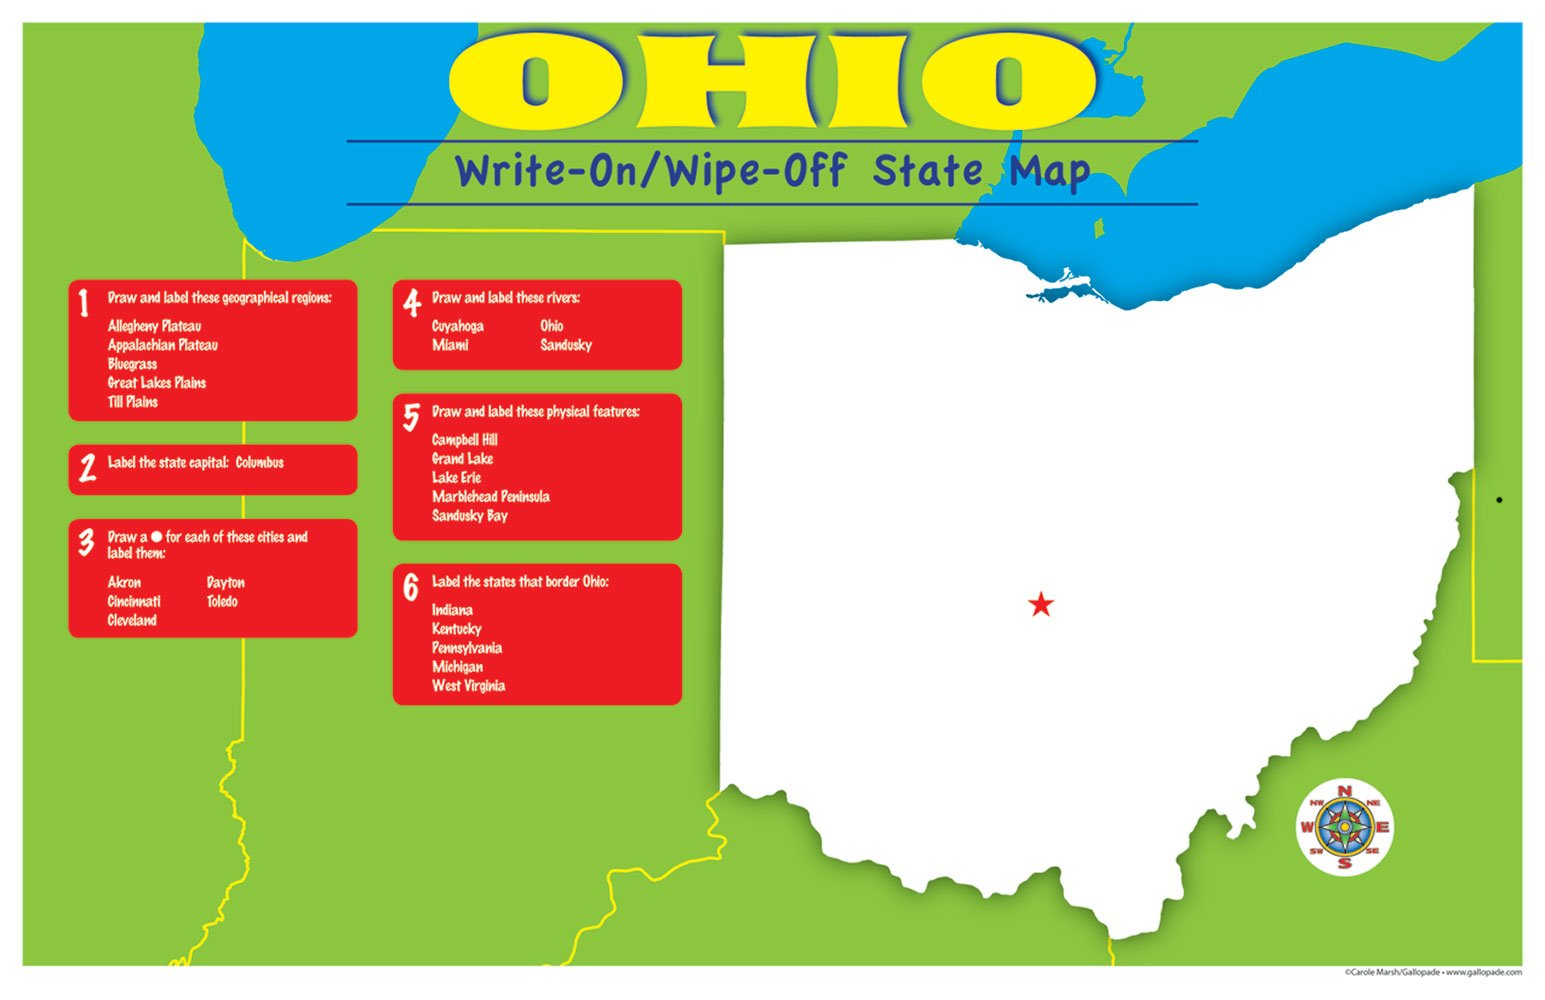 Ohio On State Map.Ohio Write On Wipe Off Desk Mat State Map Ohio Experience Amazon